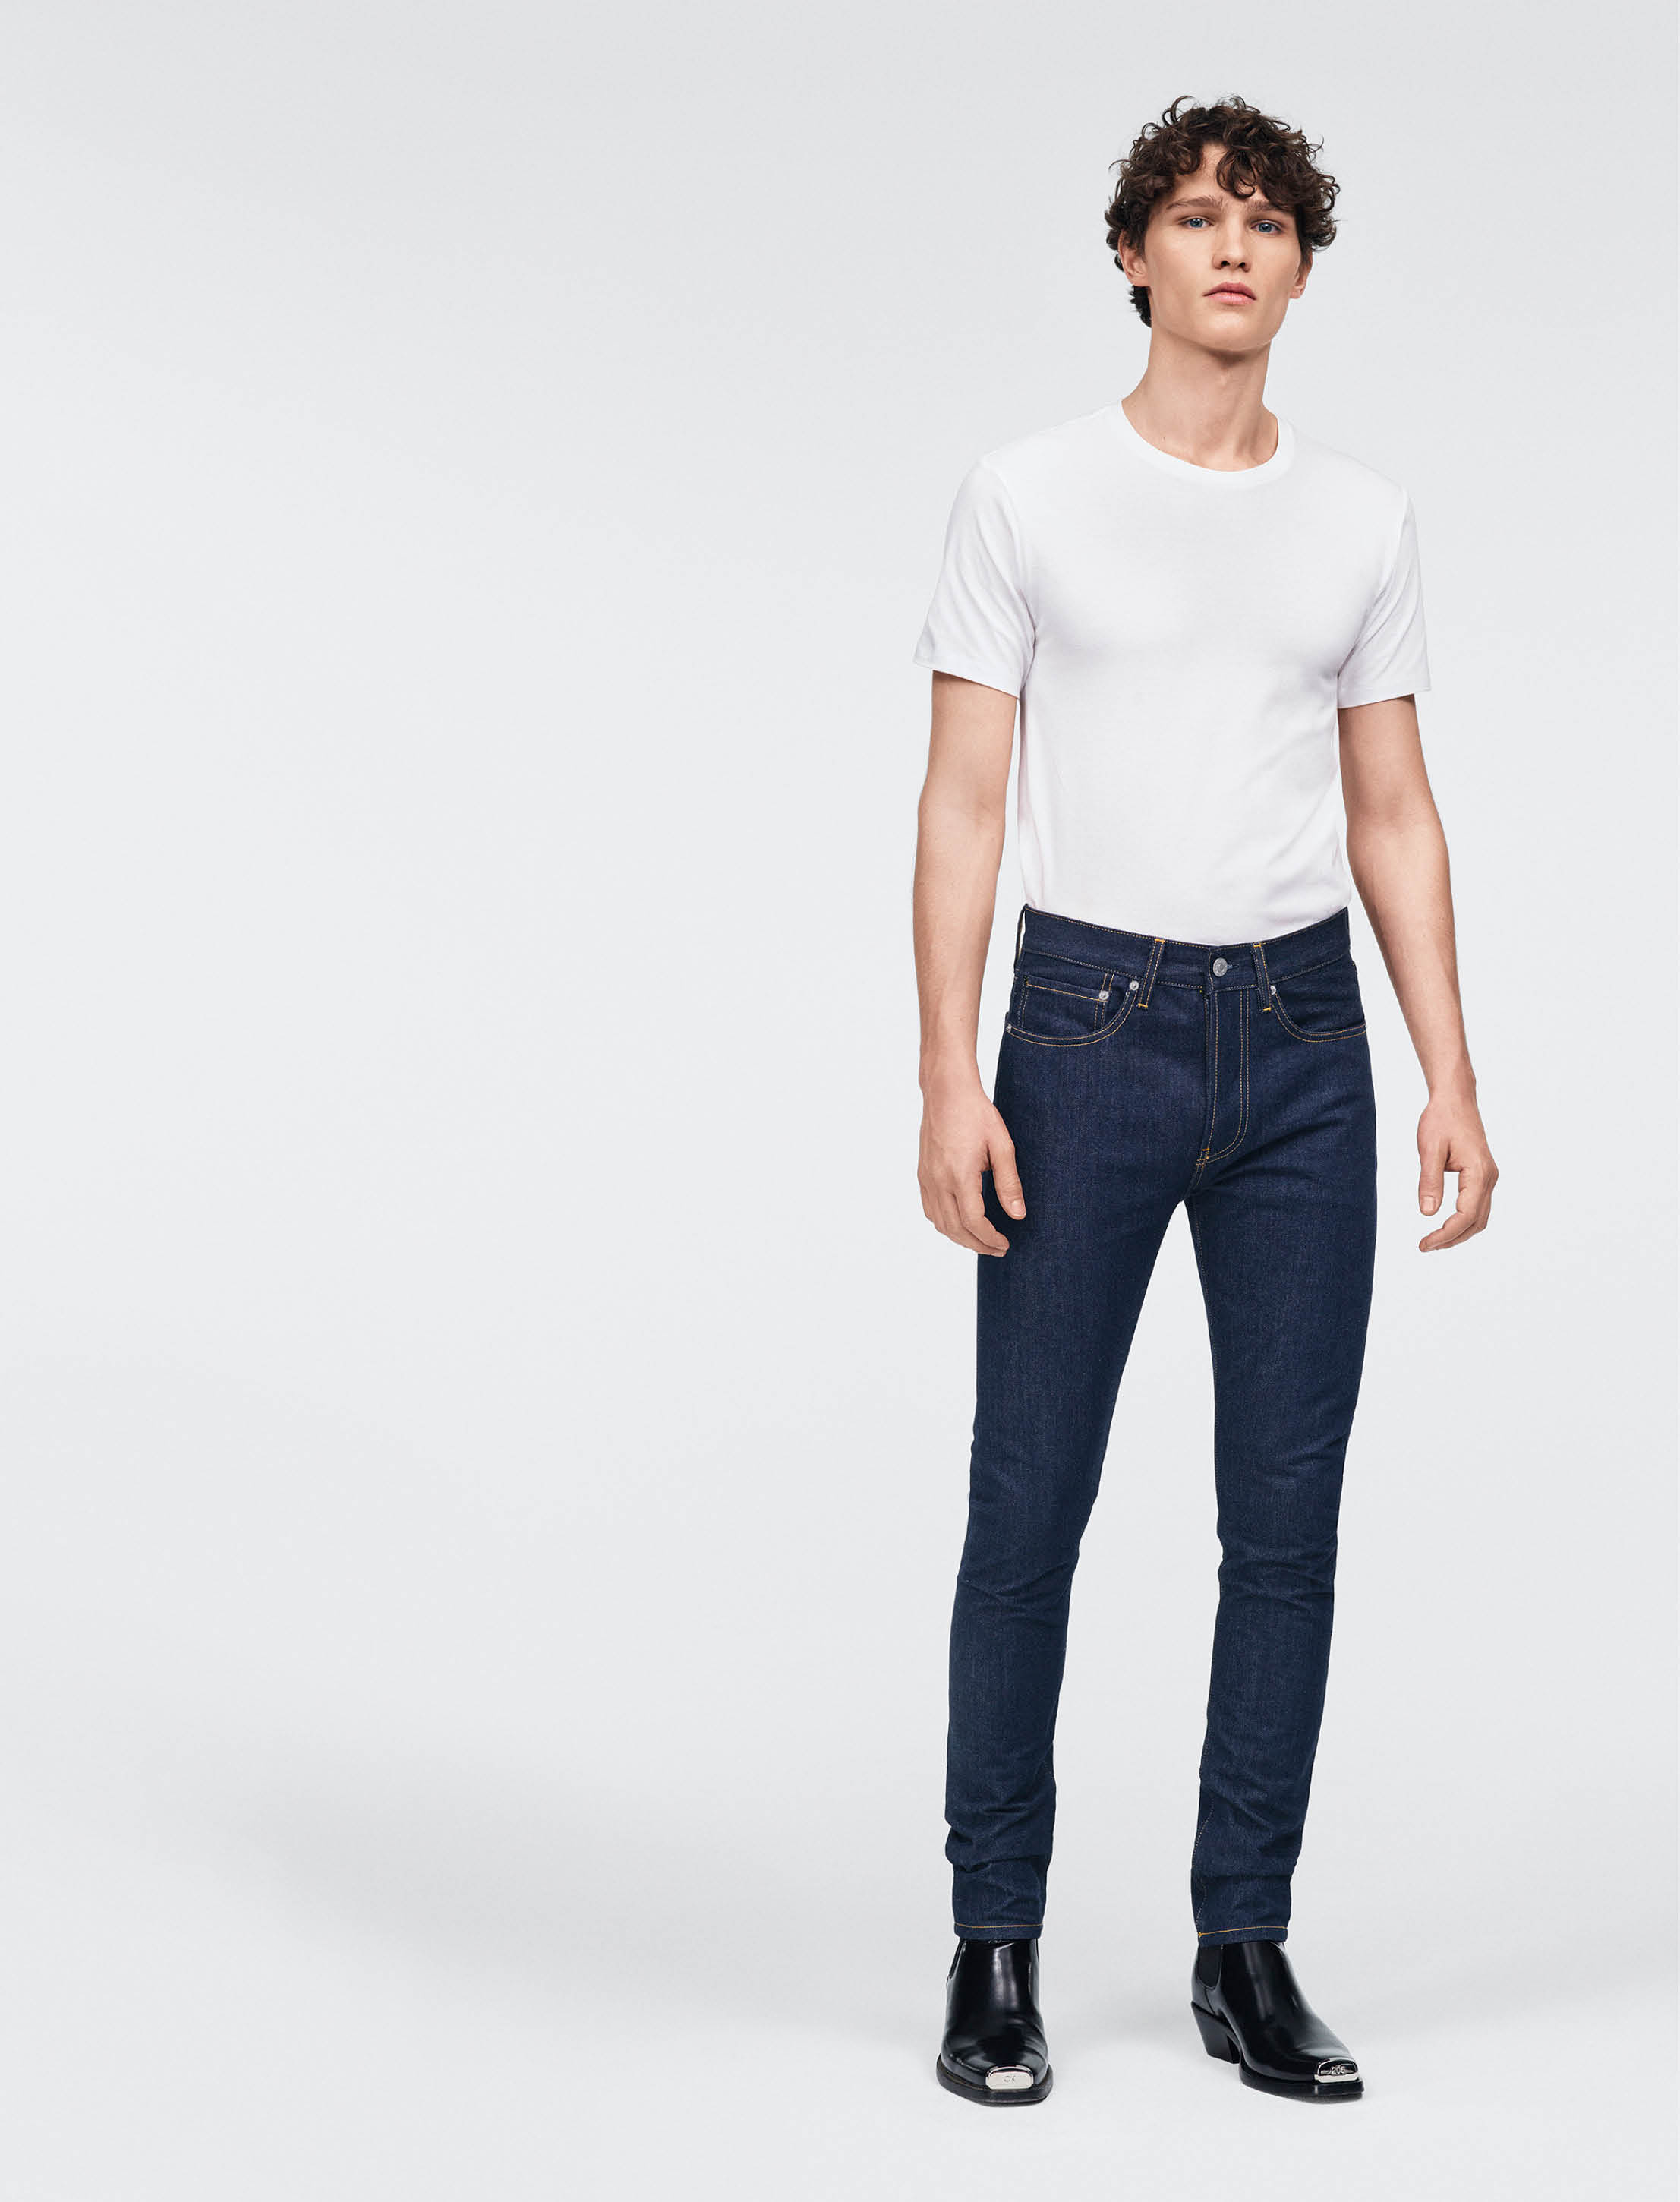 How to distinguish mens jeans from womens jeans